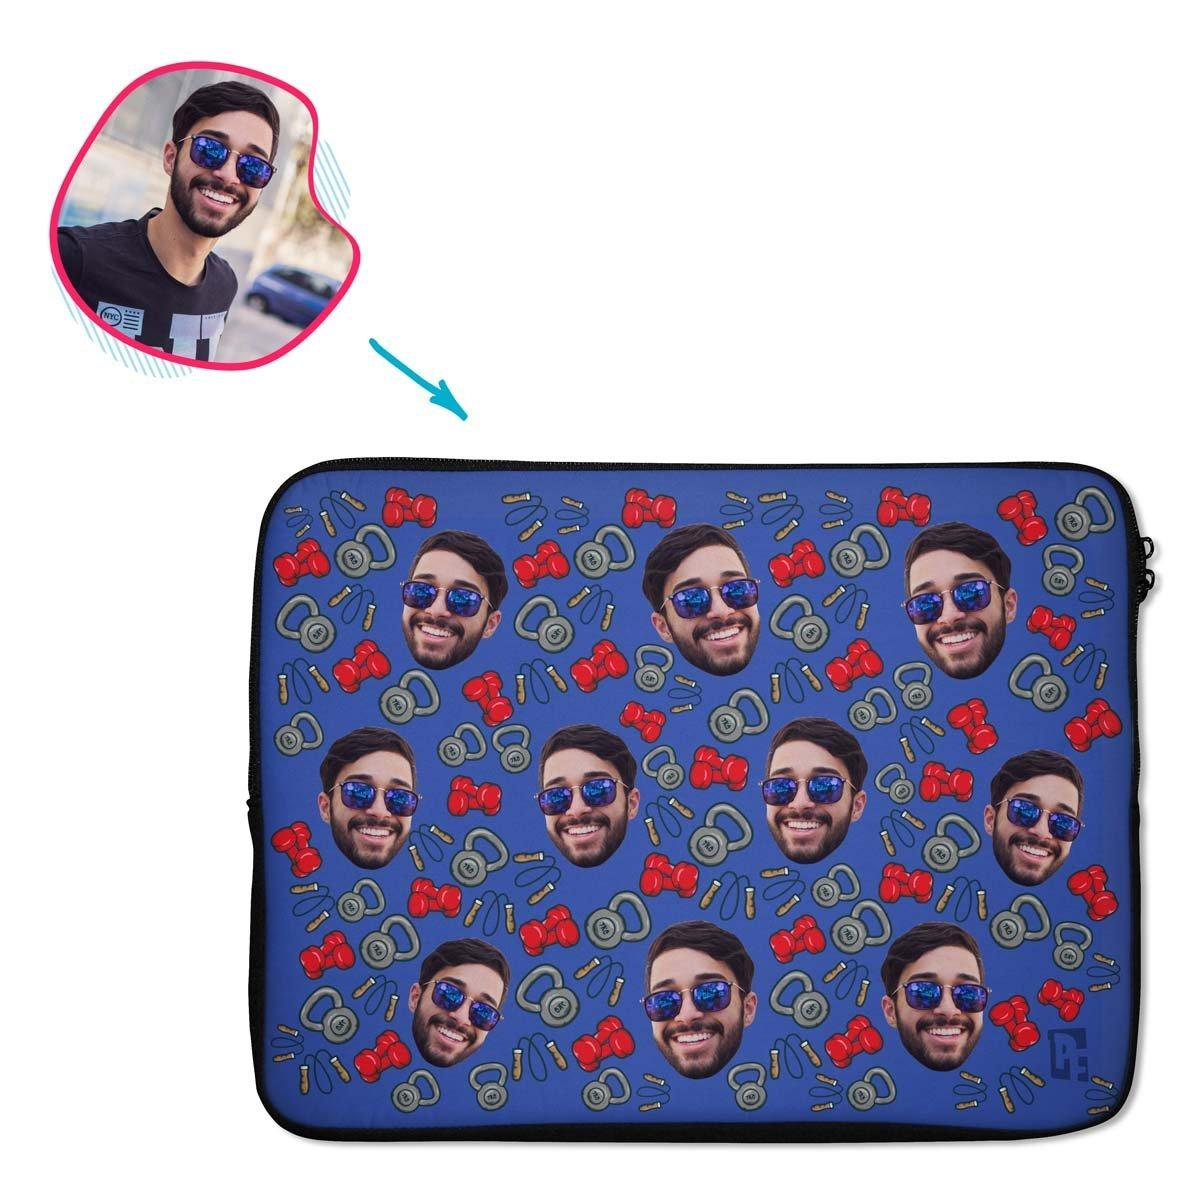 darkblue Gym & Fitness laptop sleeve personalized with photo of face printed on them